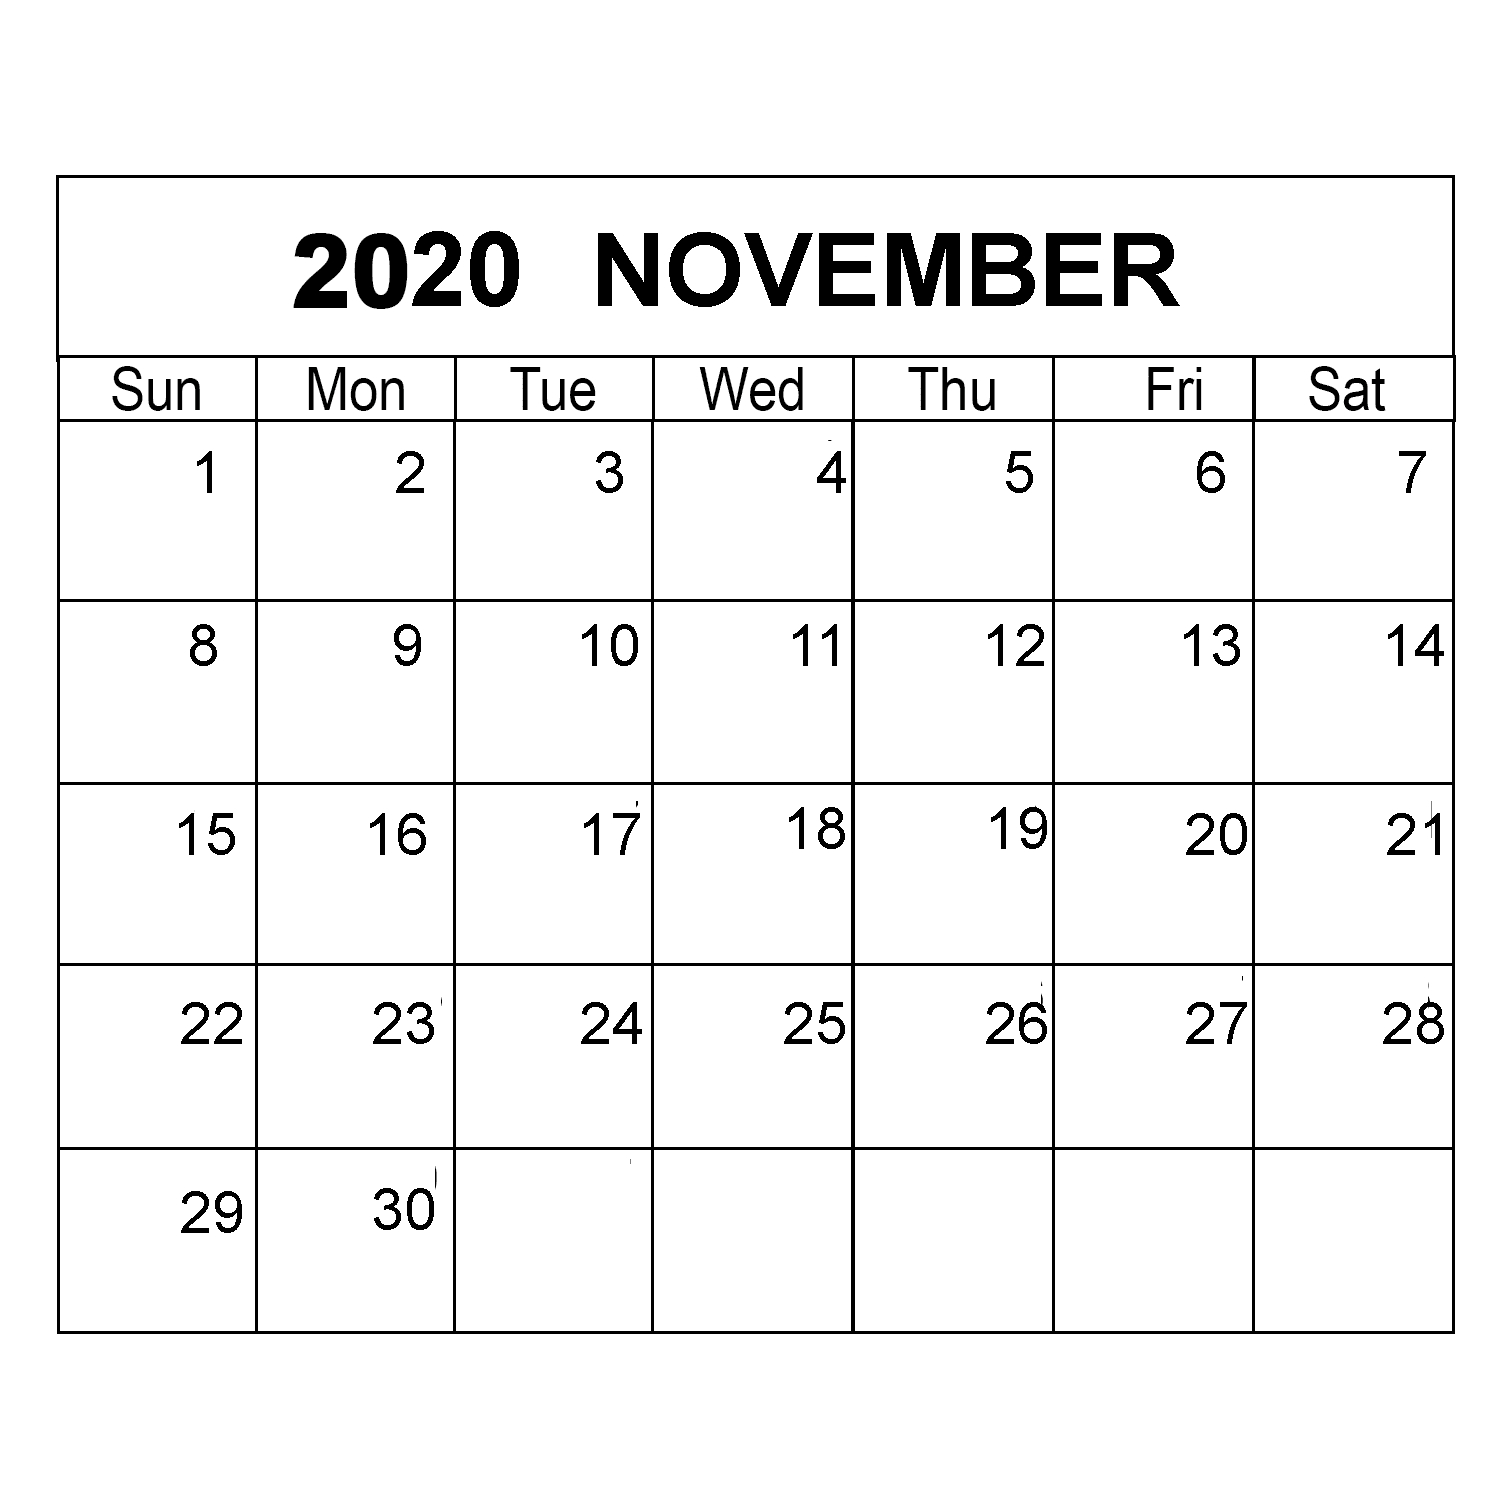 November 2020 Calendar Printable Monthly Template With Notes